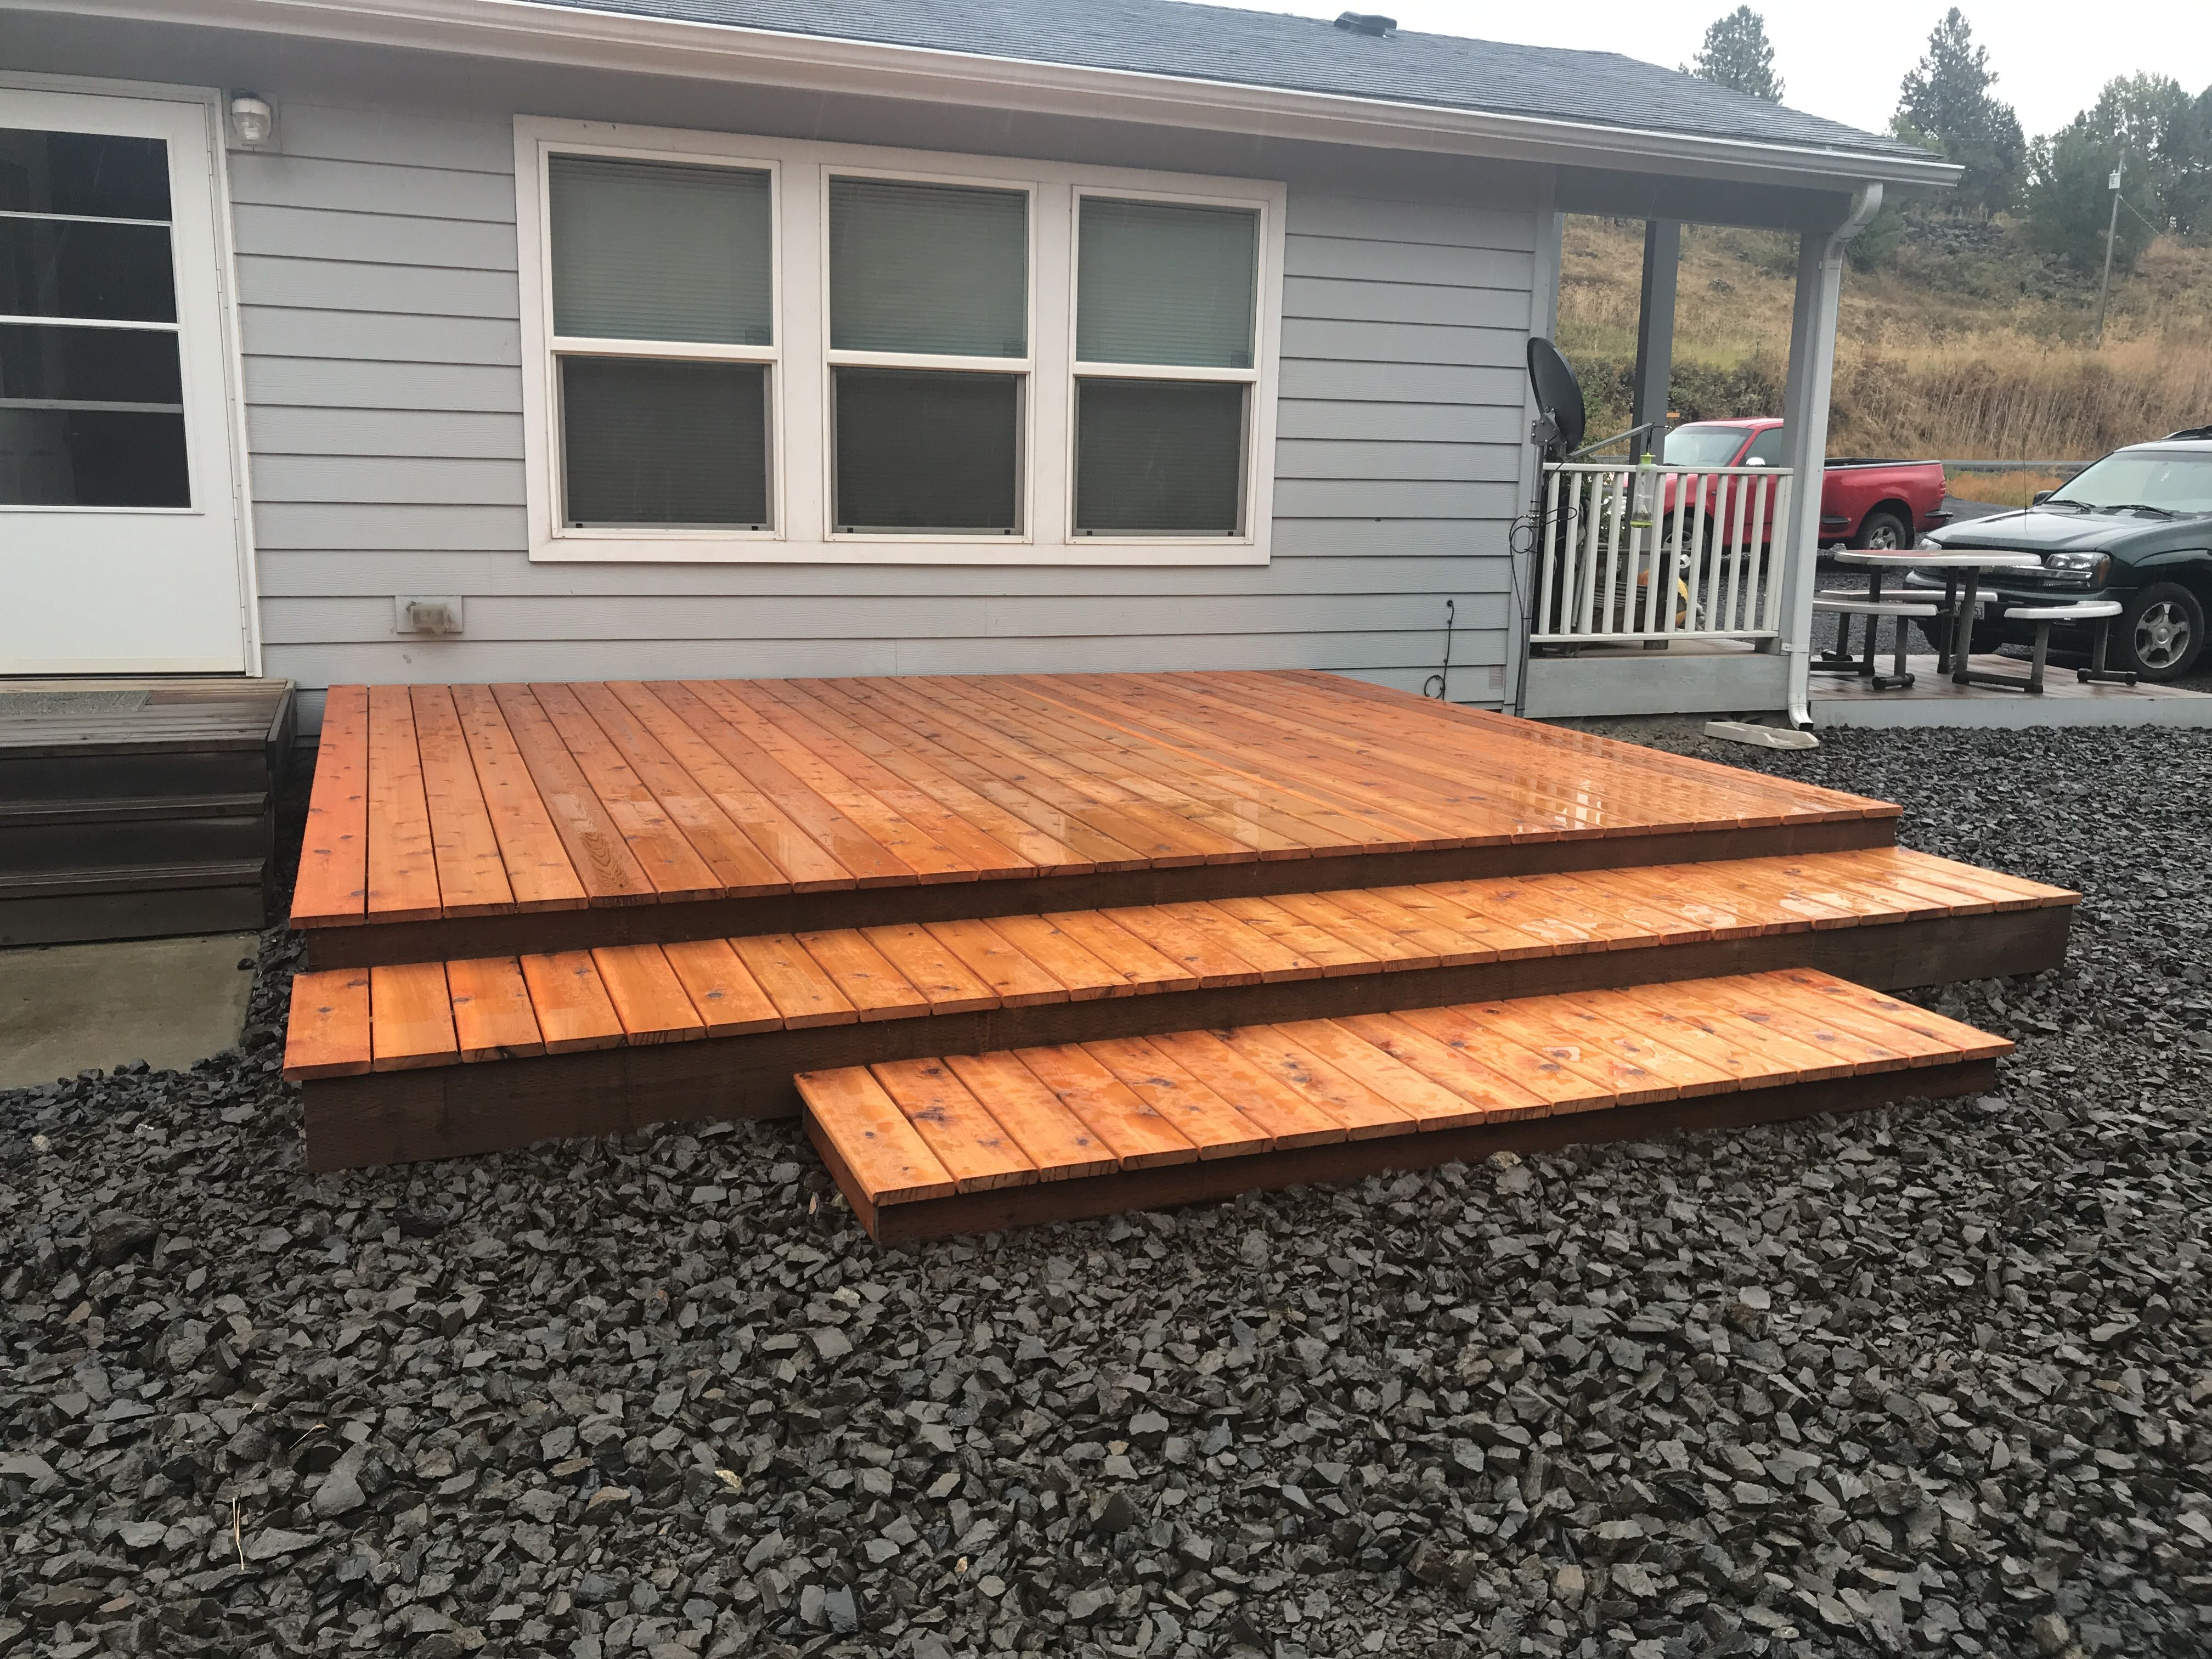 My Simple 12x14 Floating Deck Next Project For It Will Be A